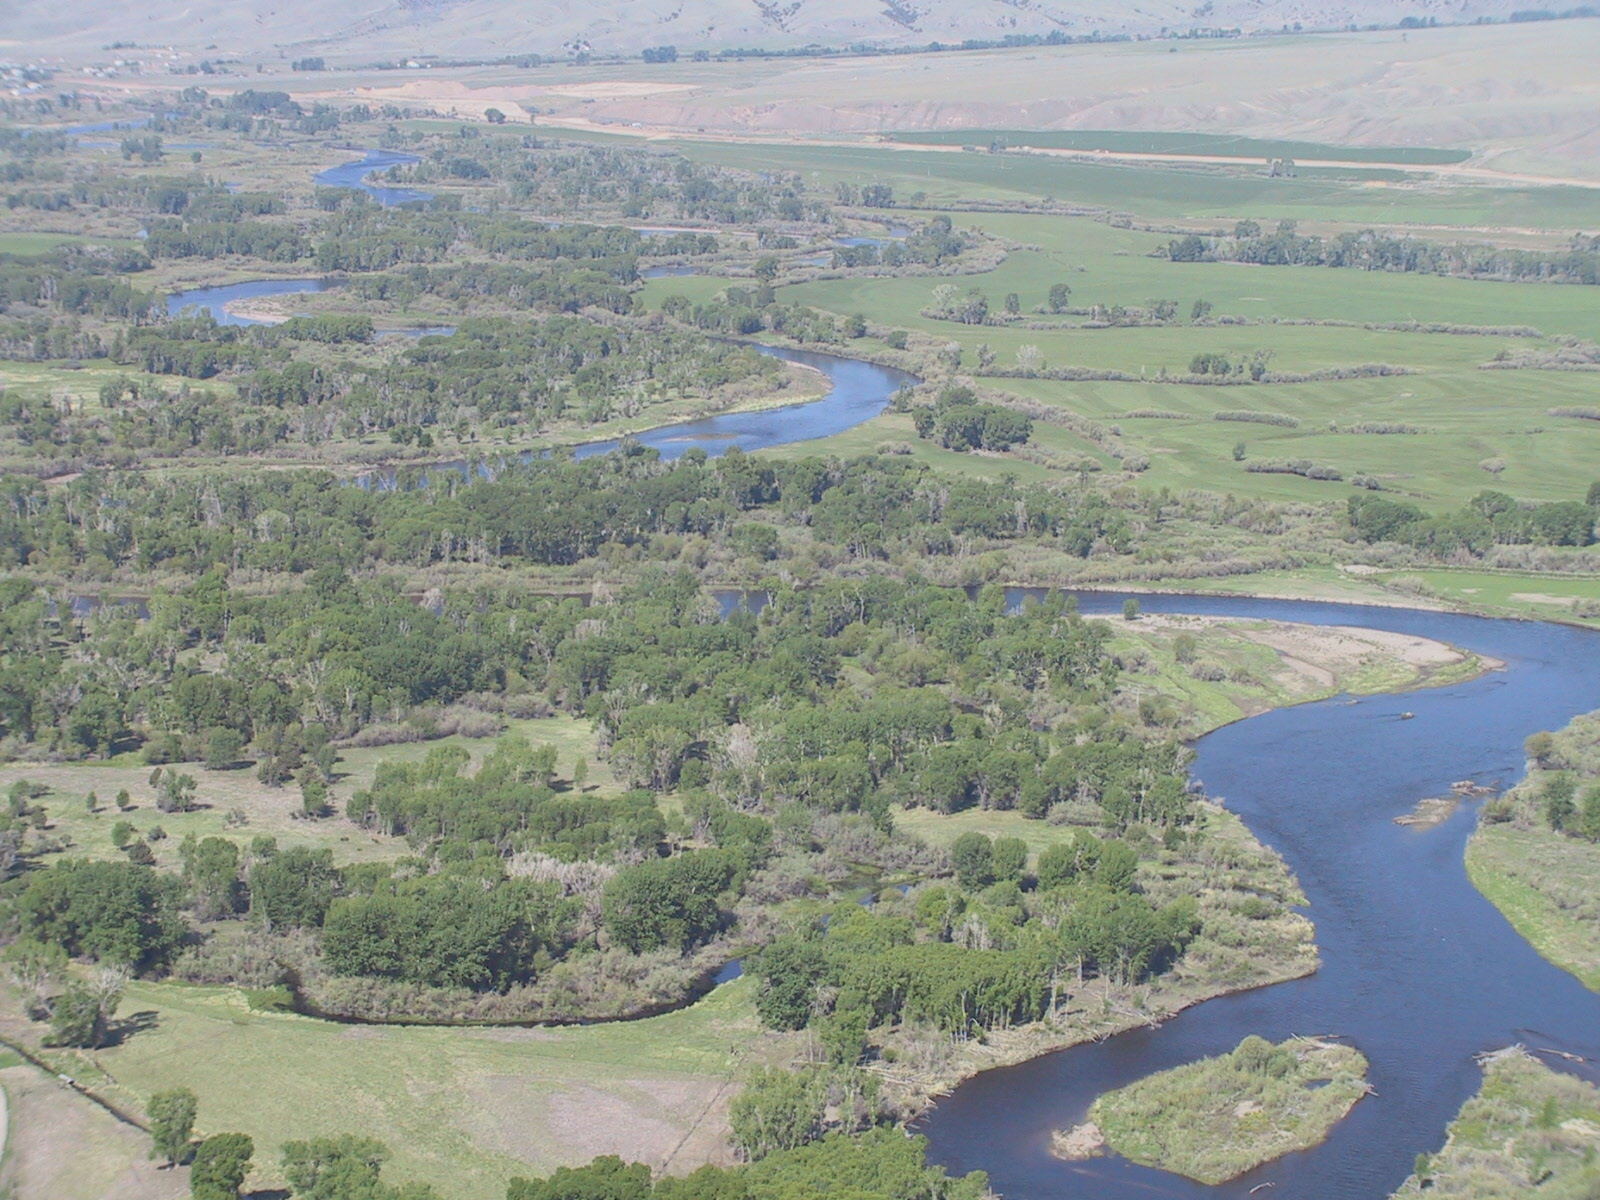 The Lewis And Clark Expedition >> Three Forks, Montana to Pasco, Washington